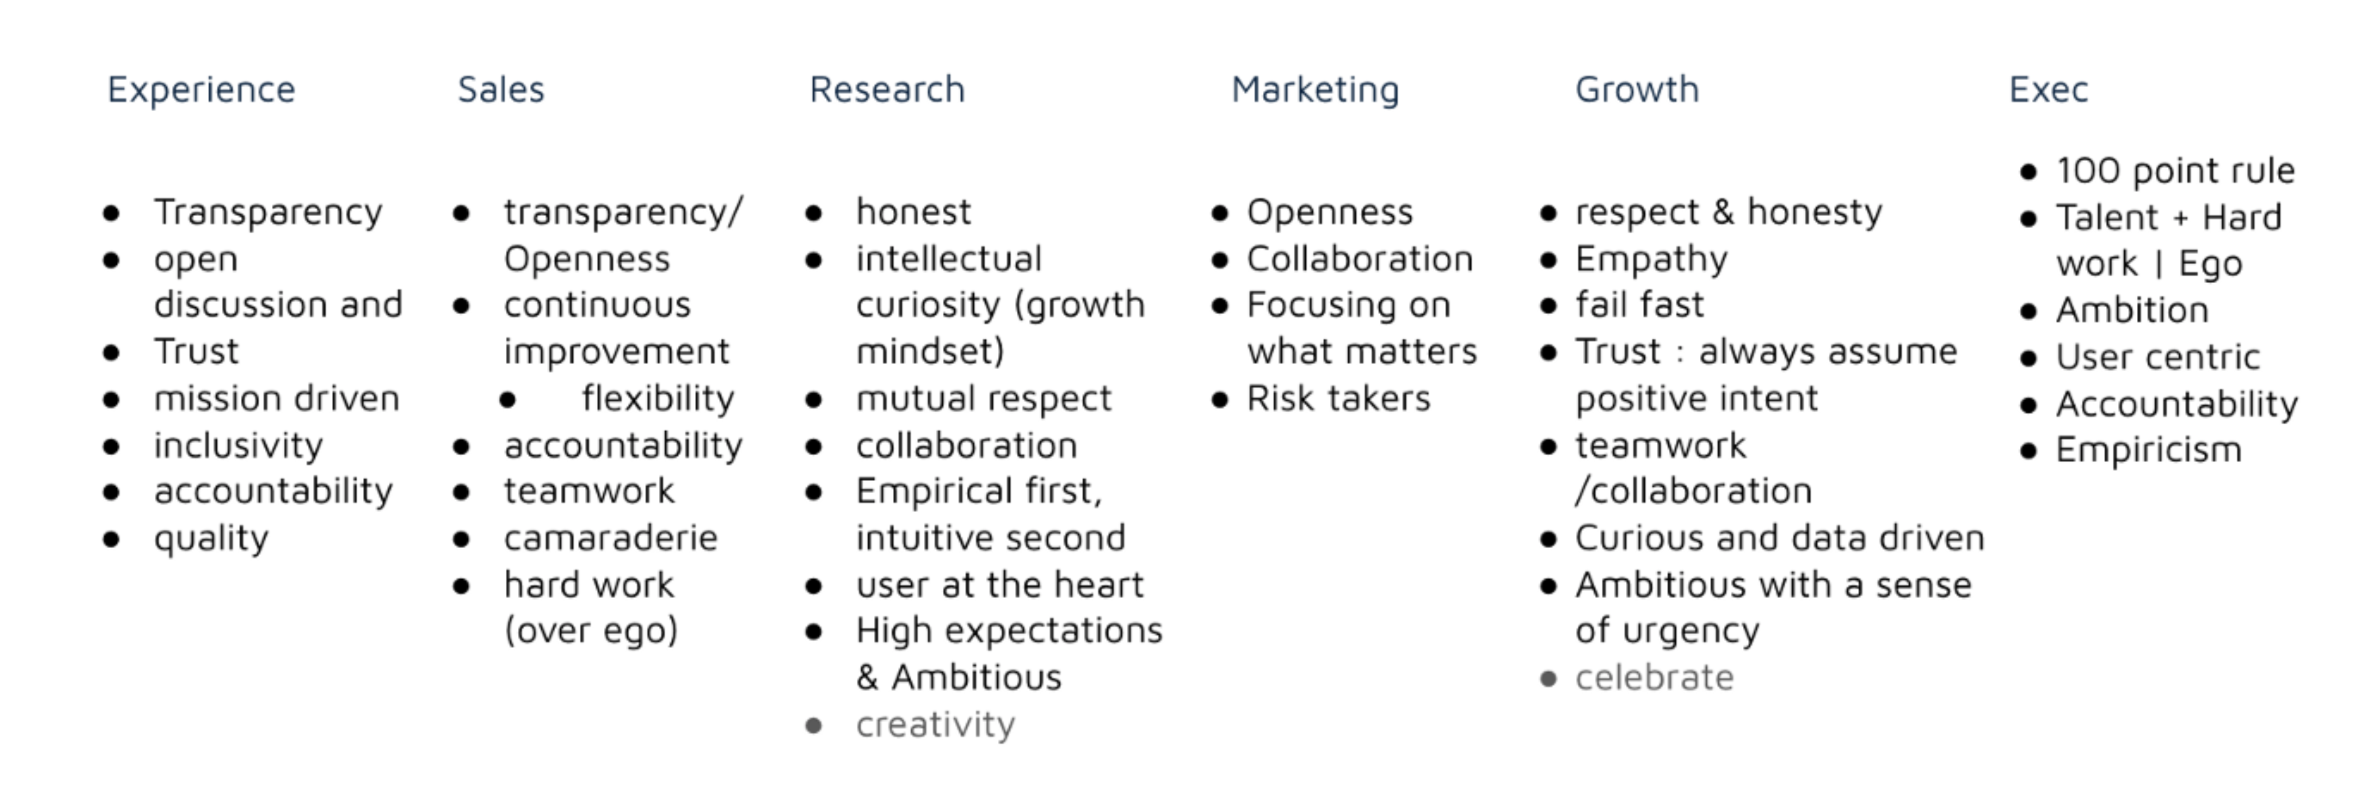 Values from workshops